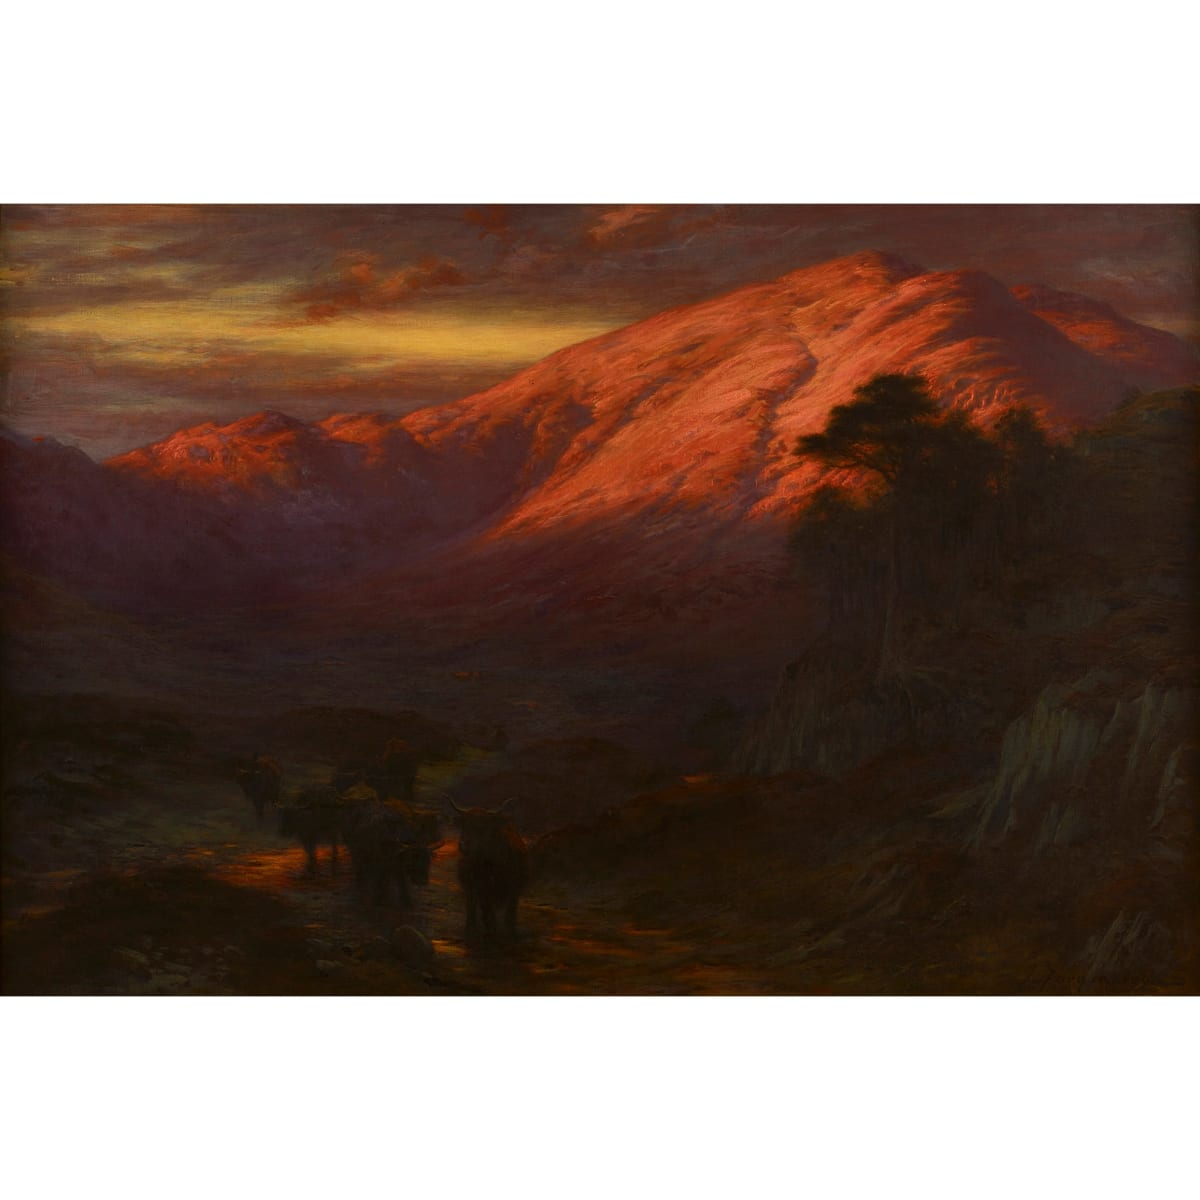 Joseph Farquharson The Rosy Flush of Dawn signed oil on canvas 39 1/2 x 59 inches